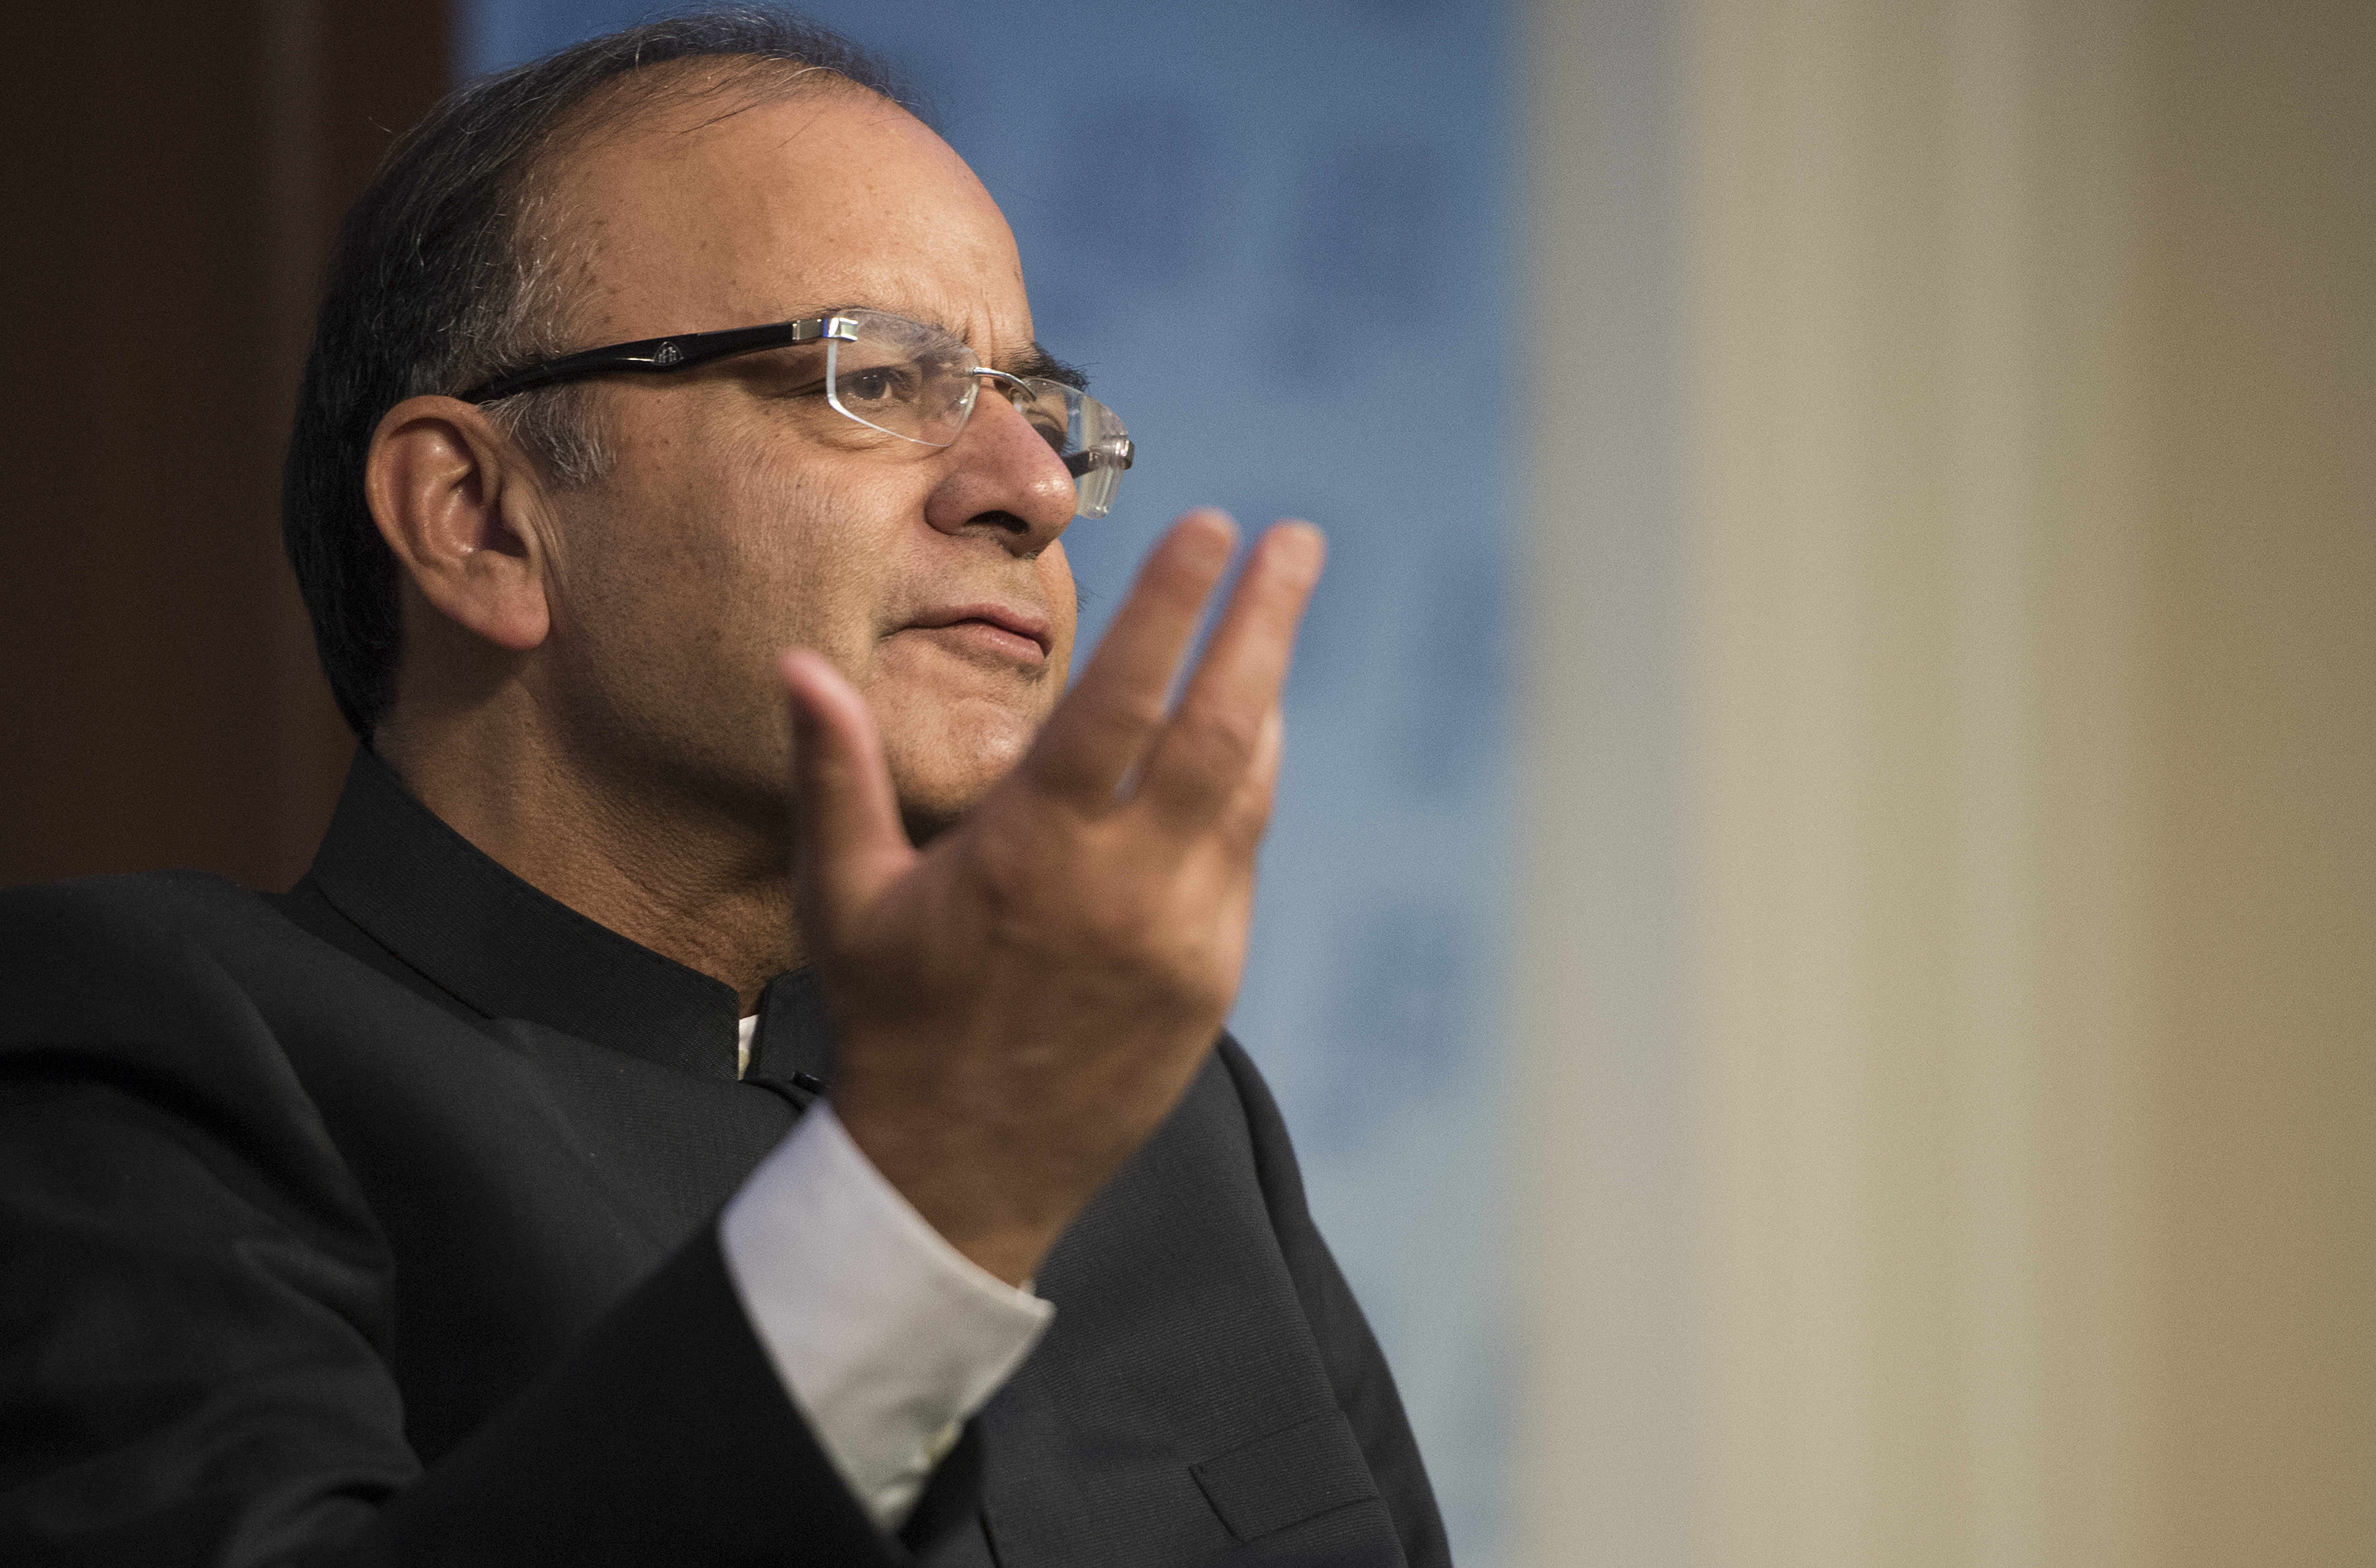 Finance Minister Arun Jaitley has conceded that the 5.7% GDP growth rate in the first quarter is a matter of concern. (Credit: Jim Watson / AFP)